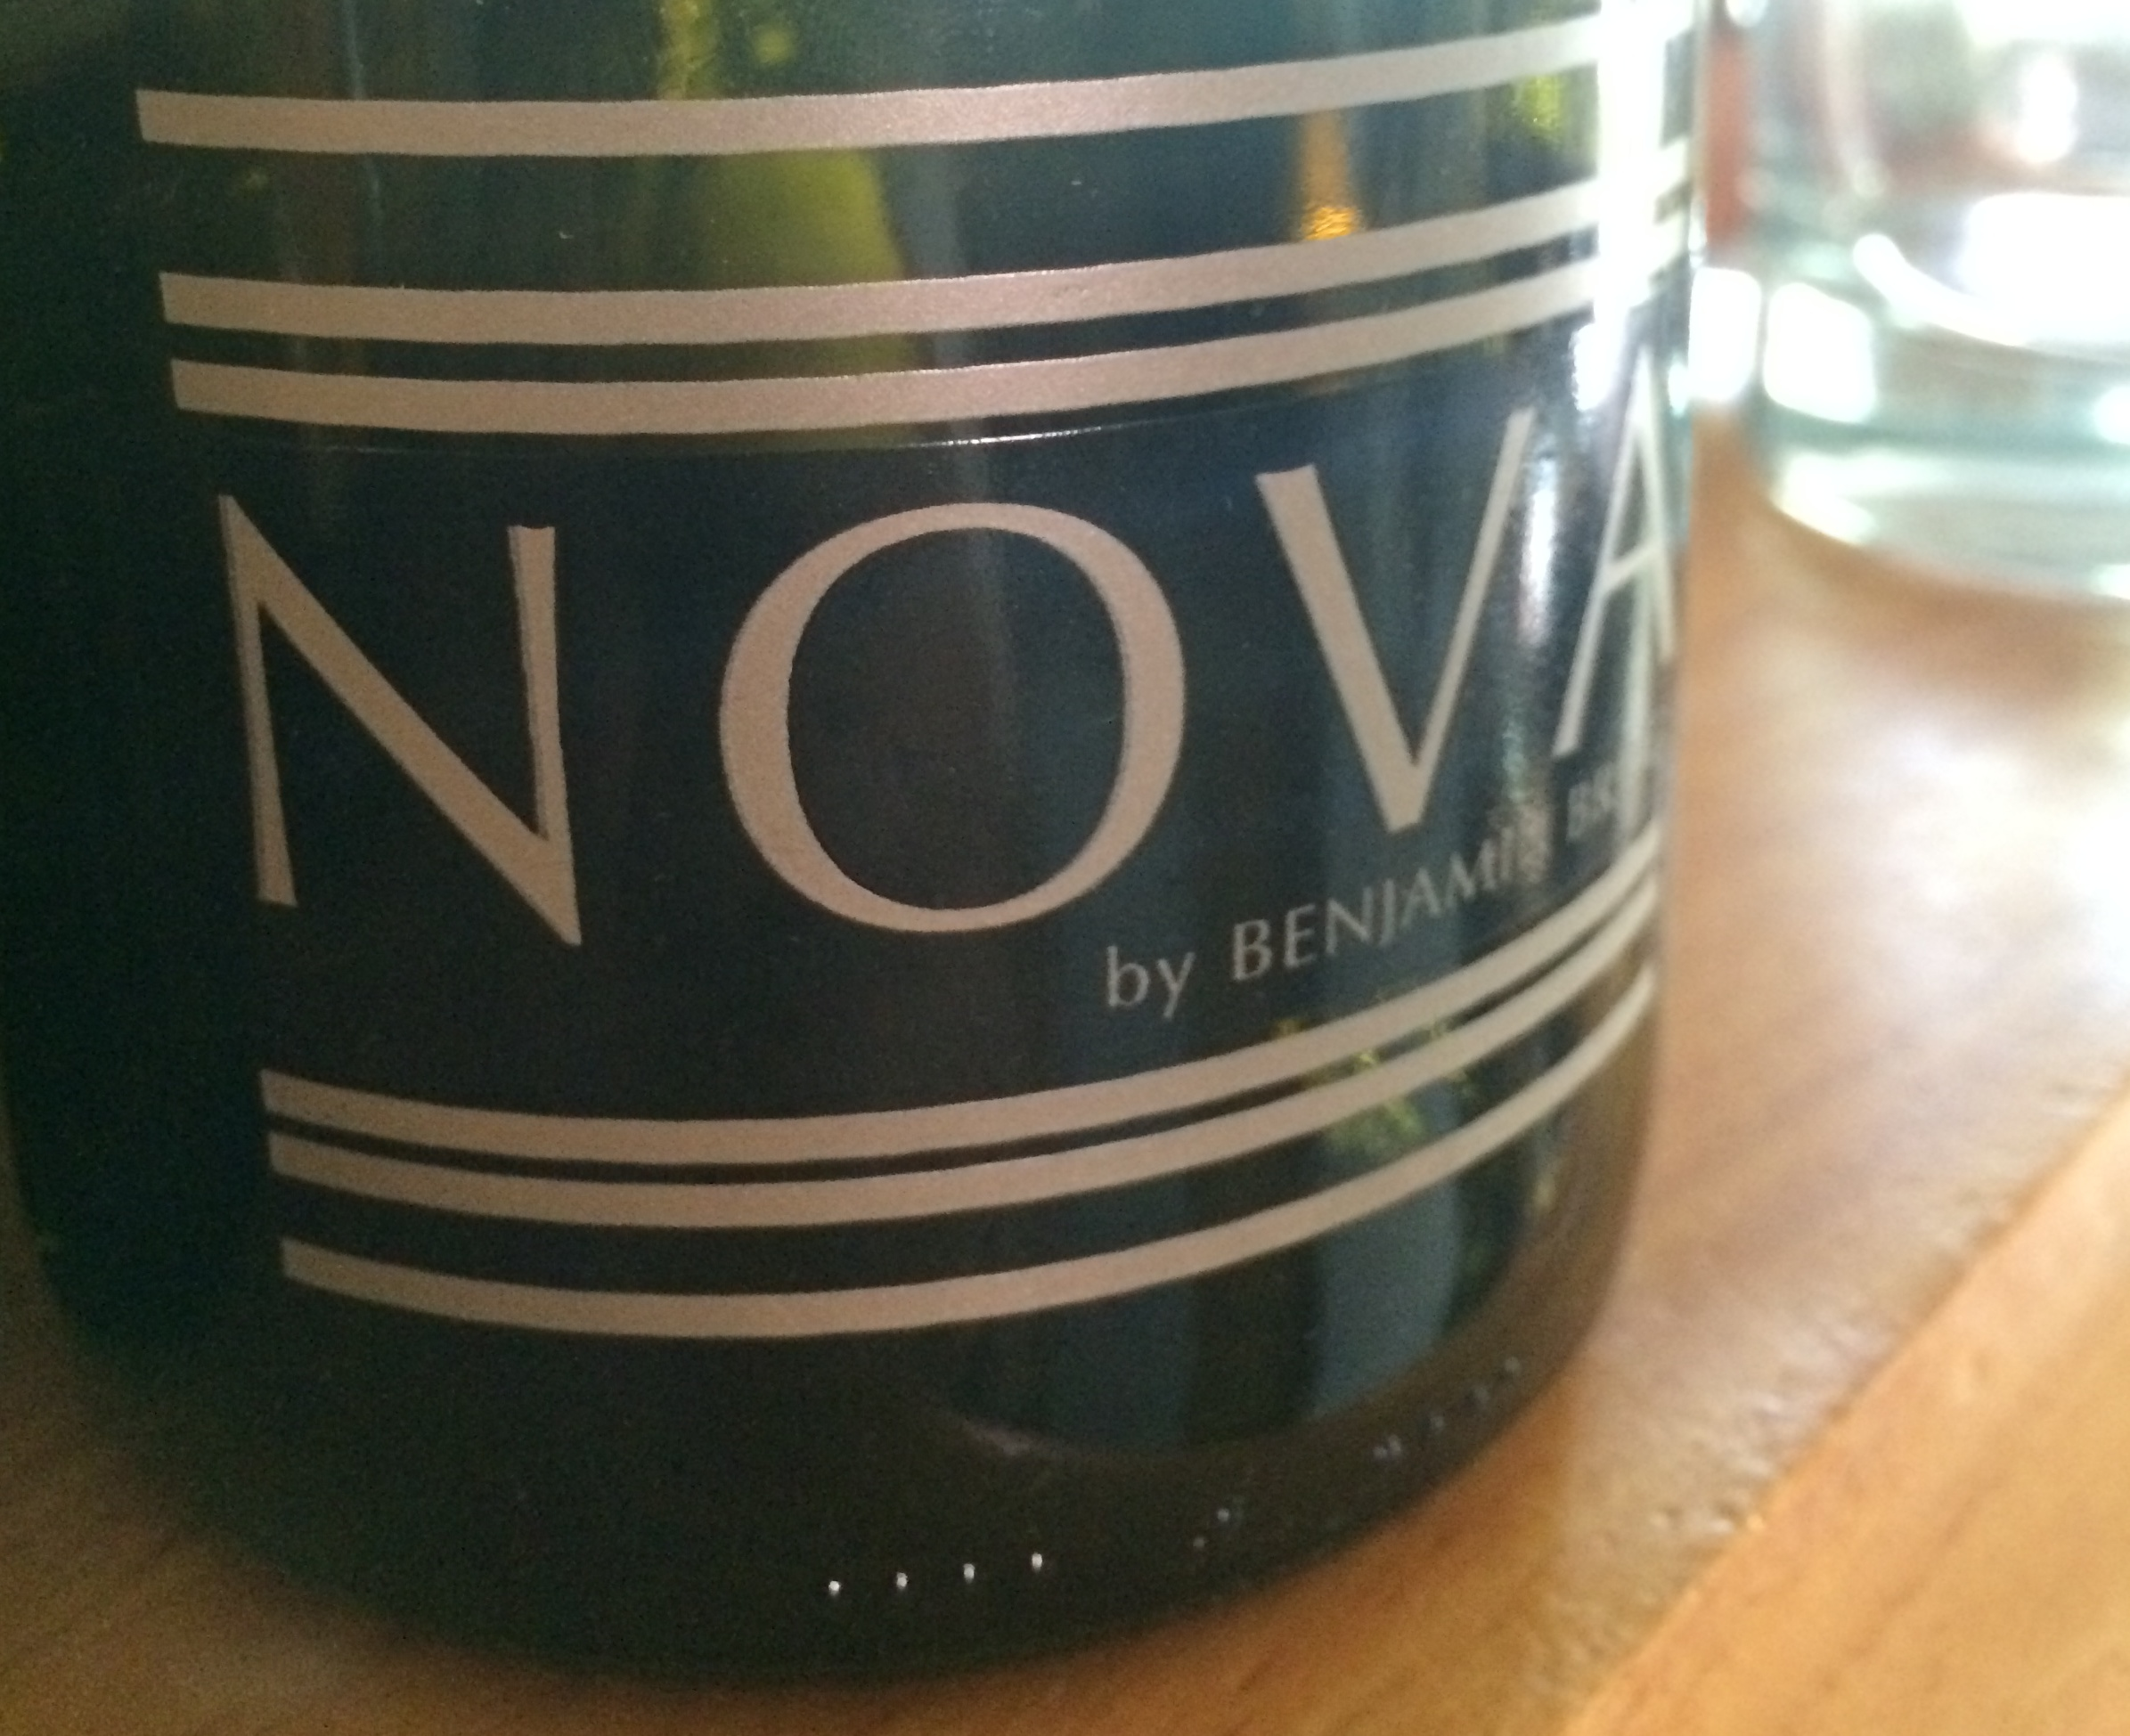 Picking up a bottle of Nova 7 was a no-brainer!